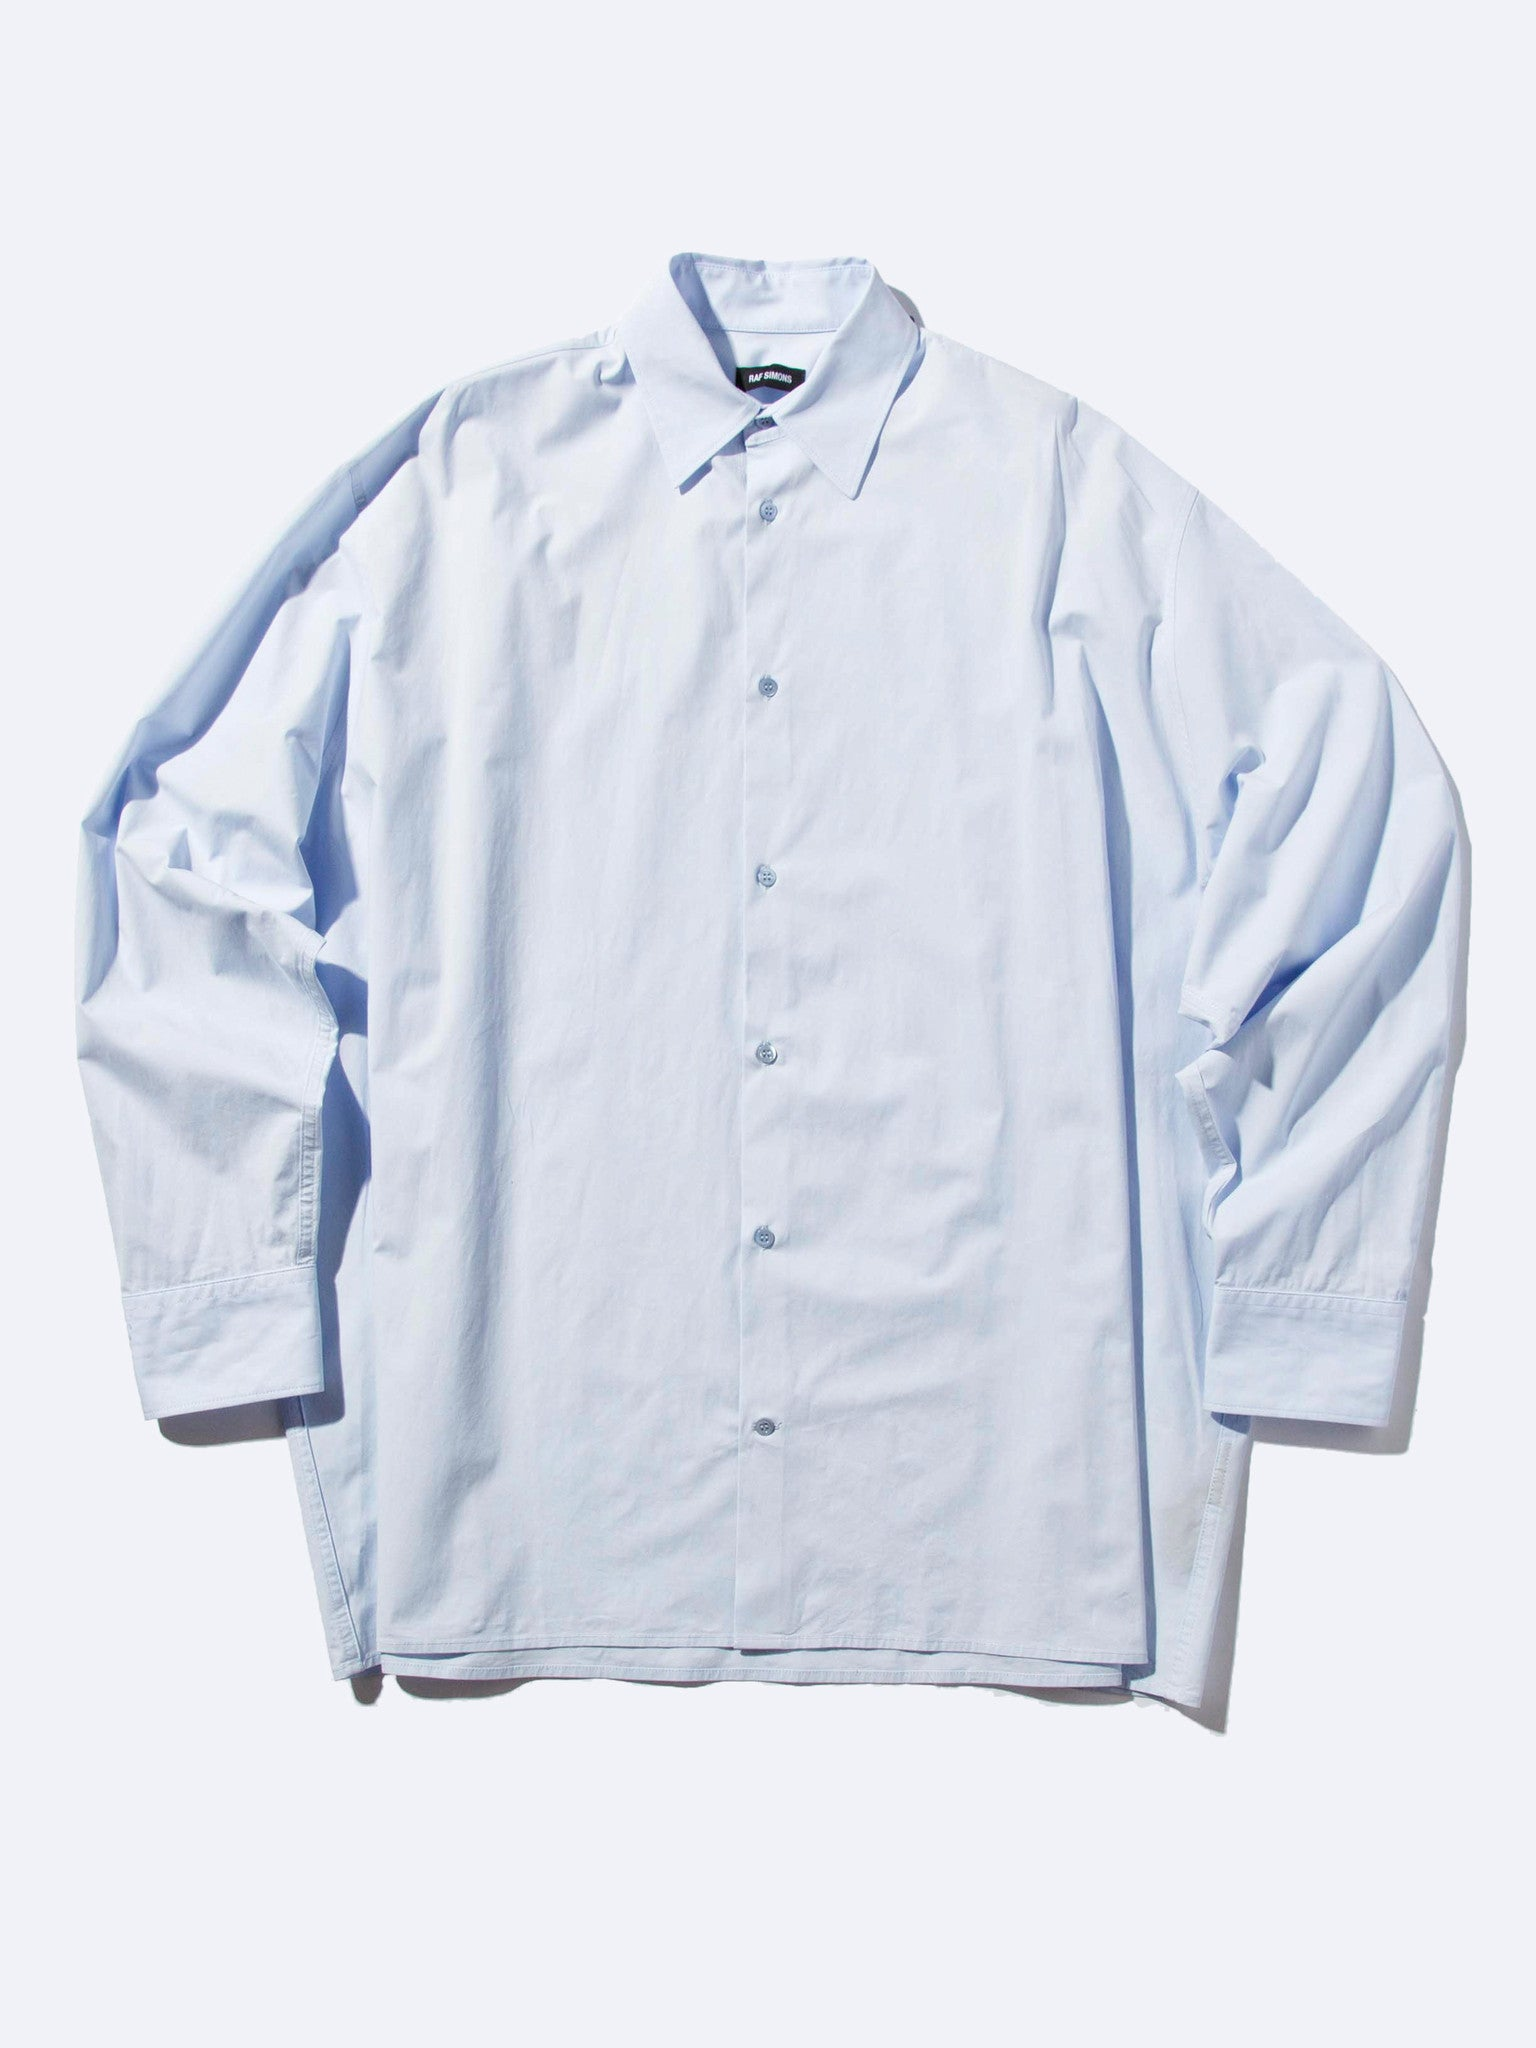 Lt. Blue Oversized Shirt 9